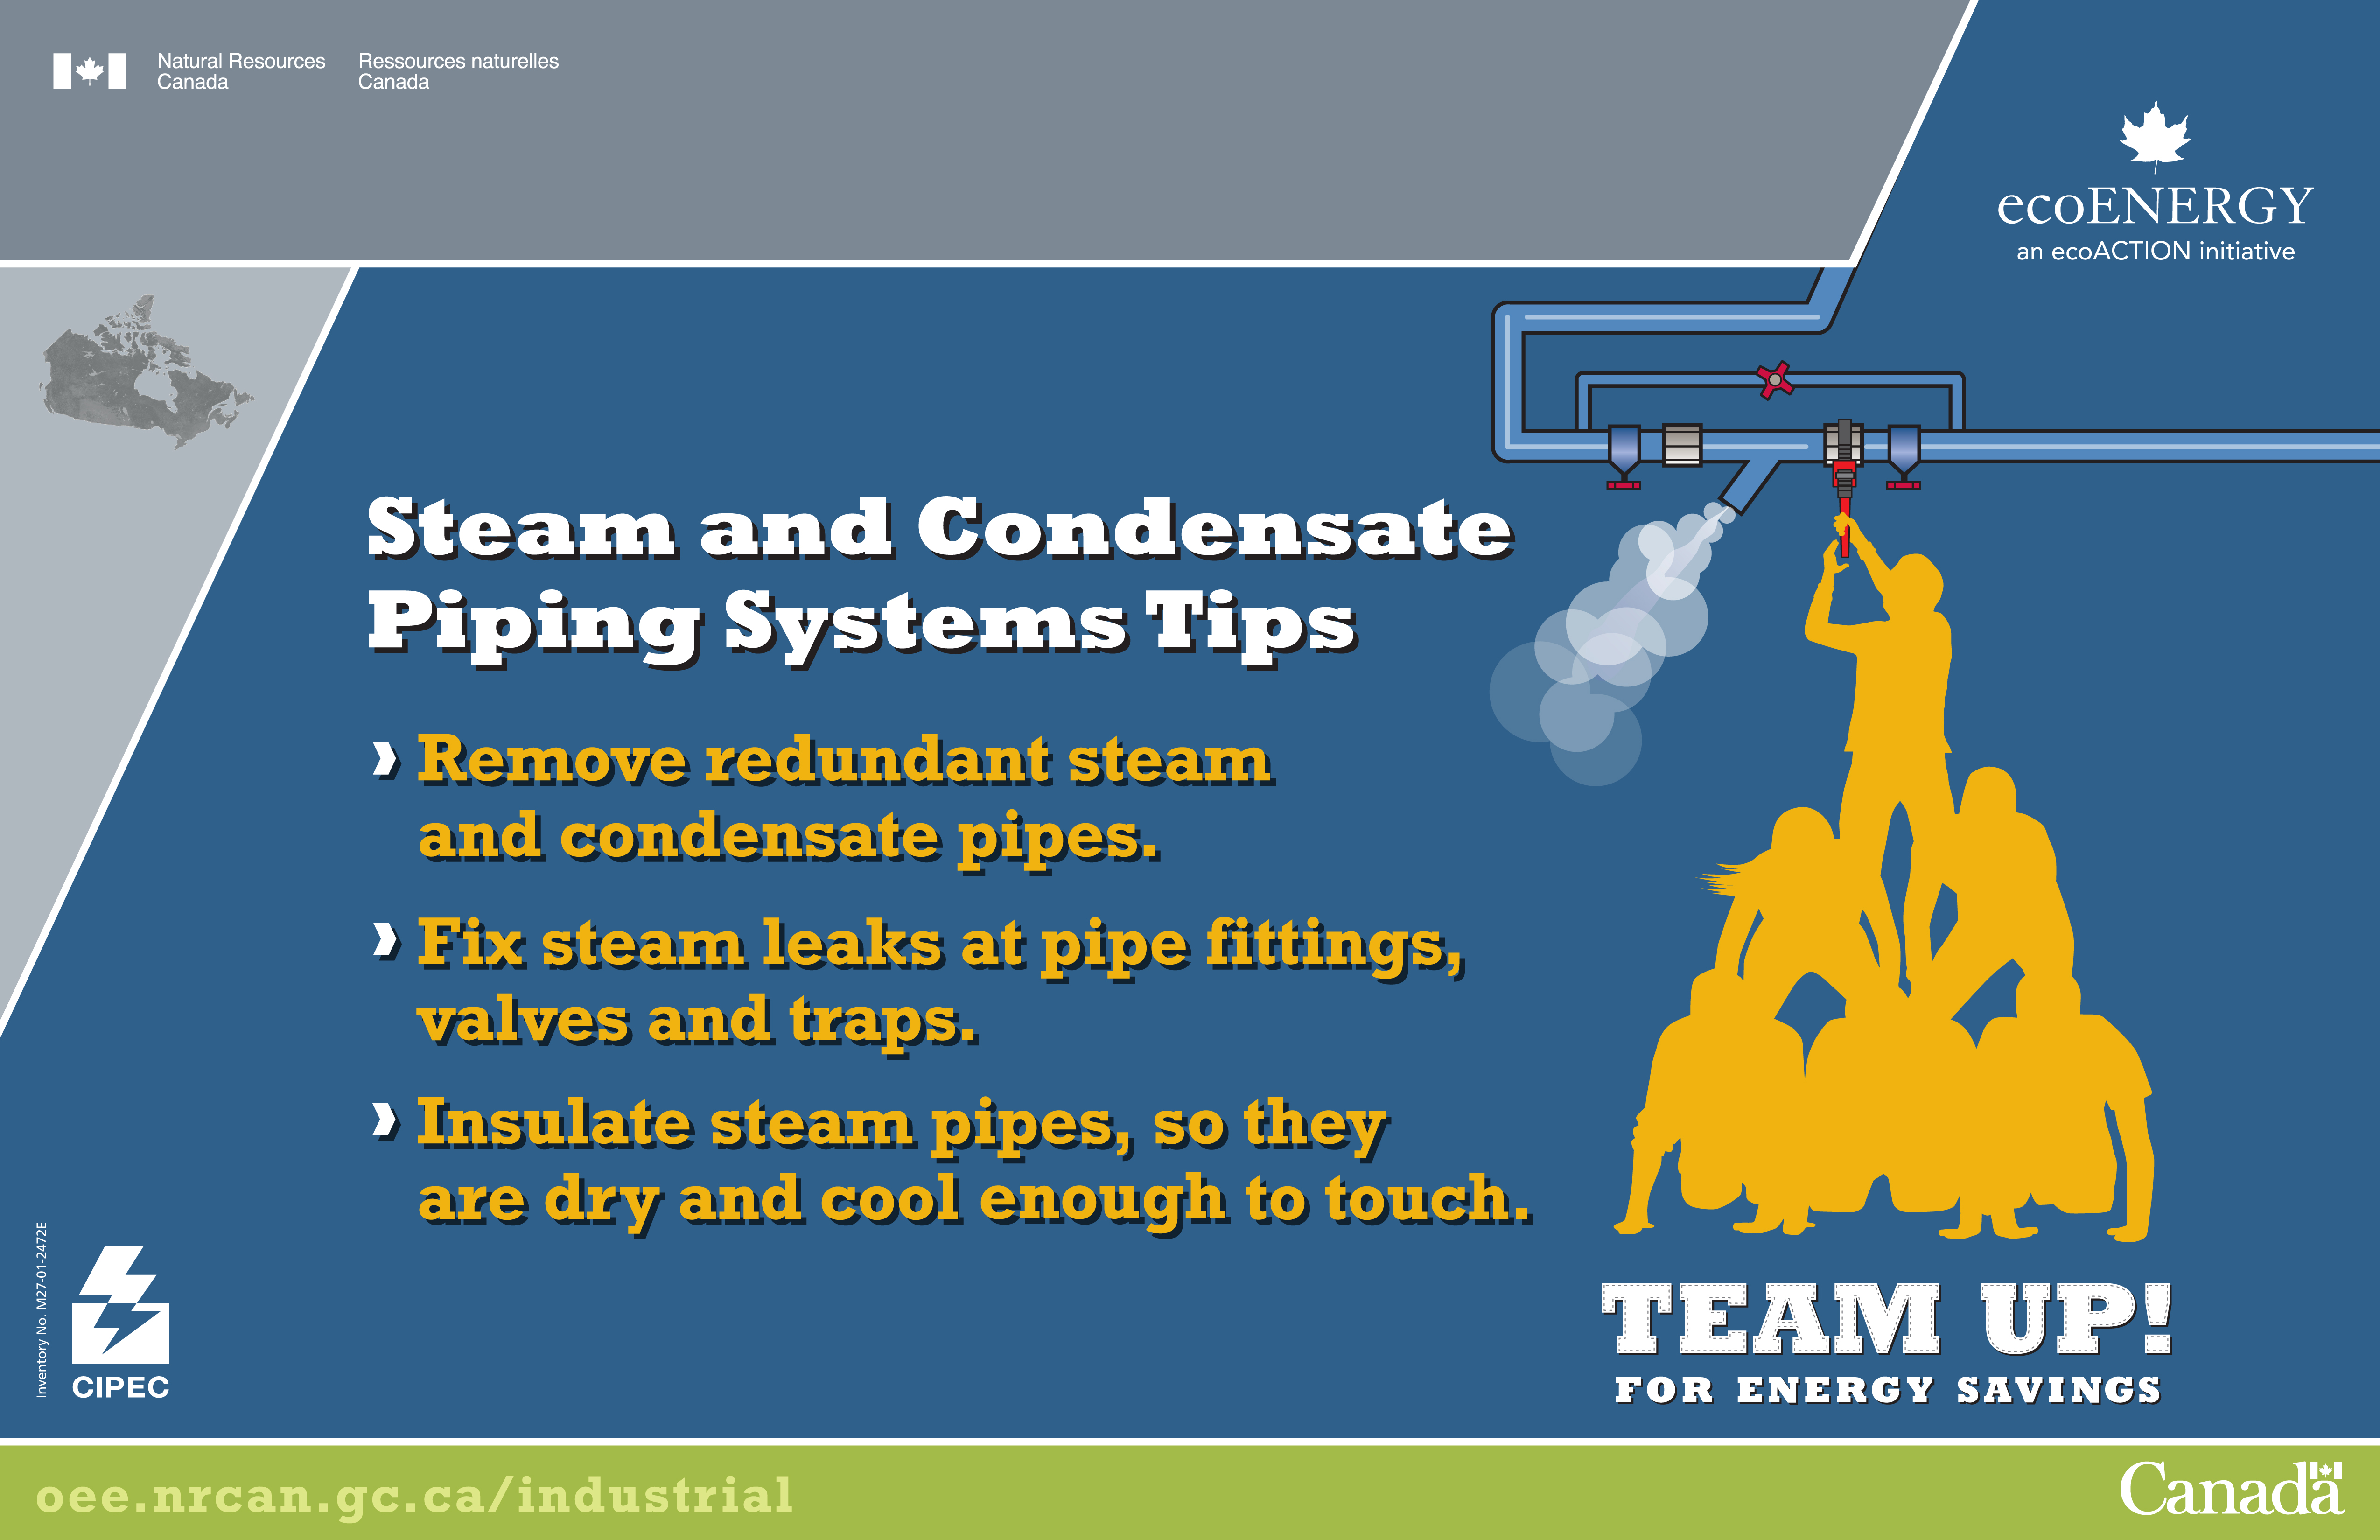 Employee Awareness Of Energy Efficiency Natural Resources Canada Dry Steam Power Plant Diagram High Resolution